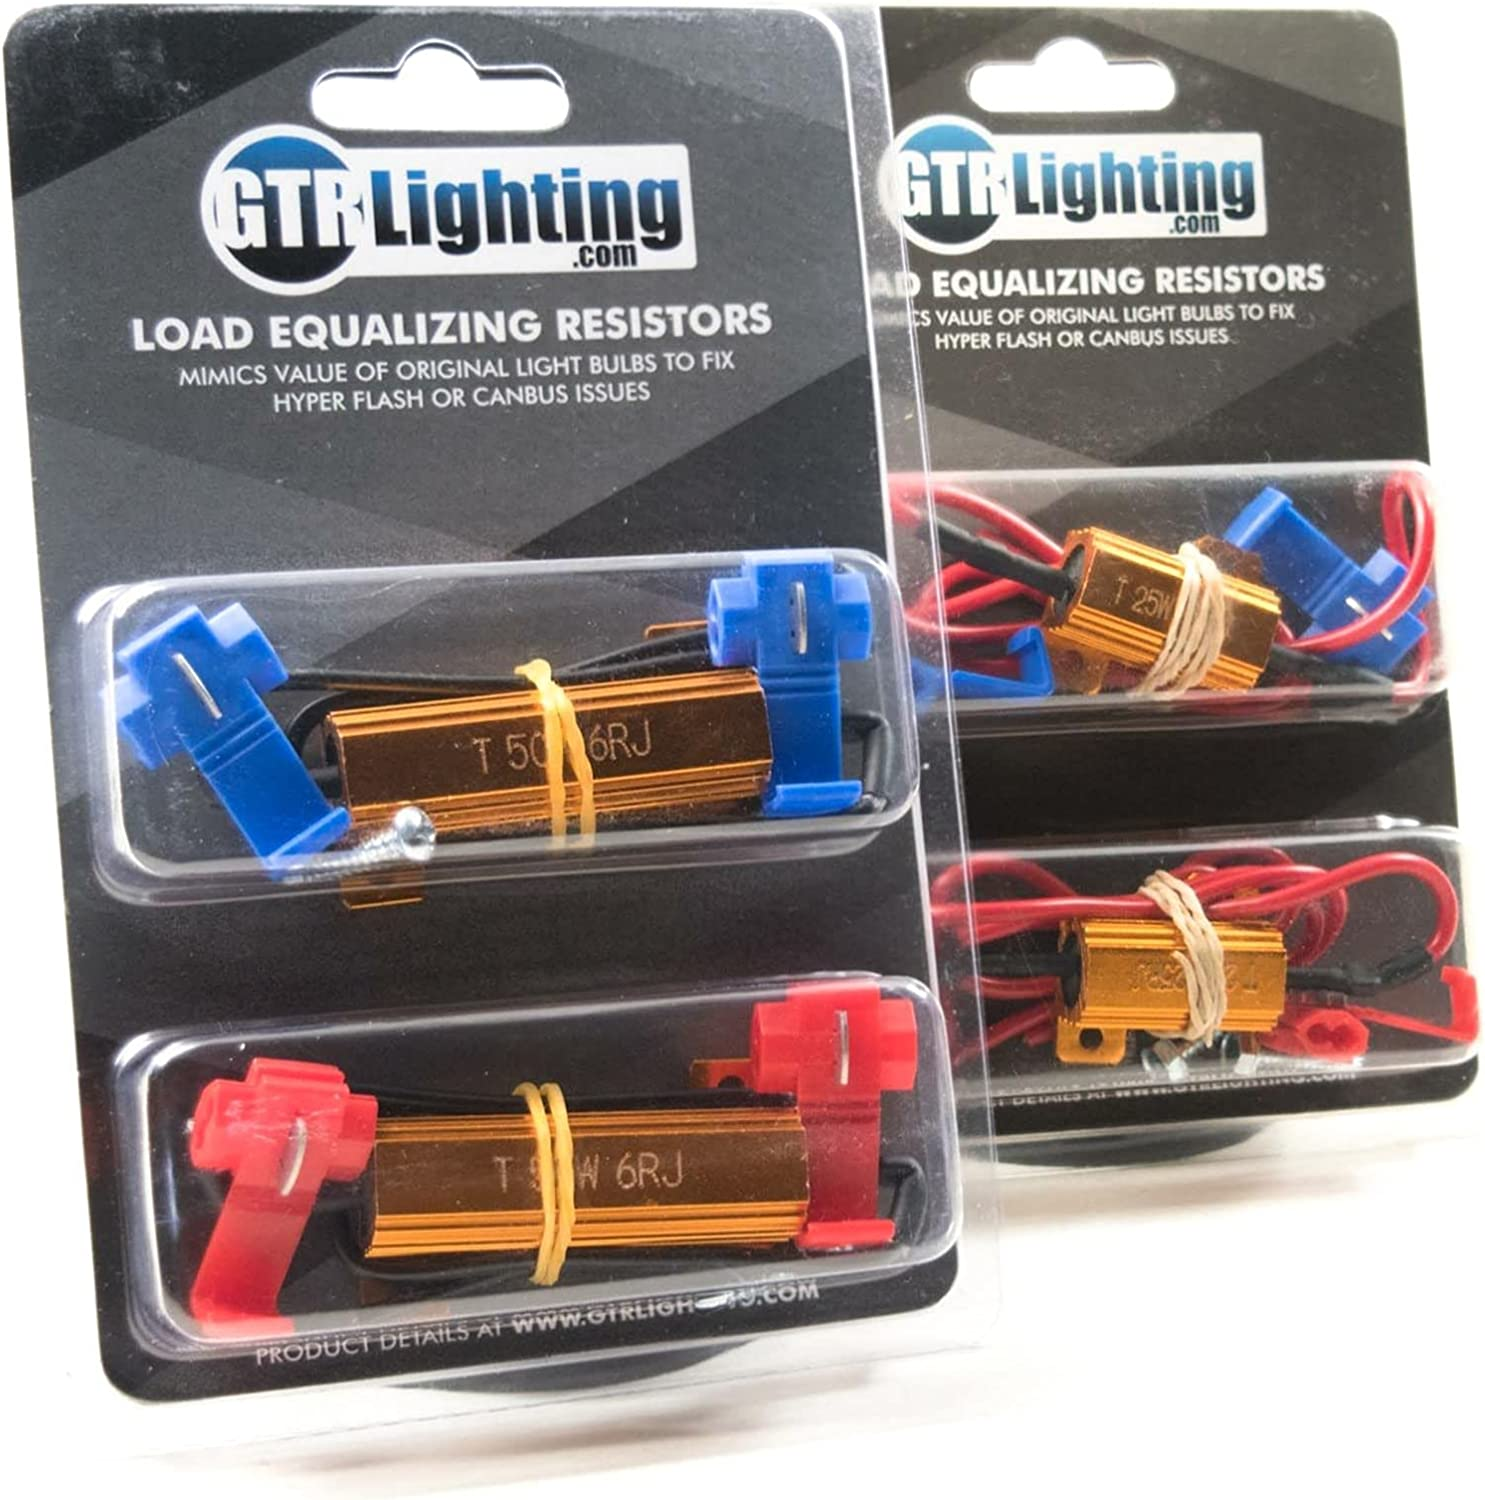 GTR Lighting Load Albuquerque Mall Resistor 50w 6ohm resistor LED Fashionable Turn sig for